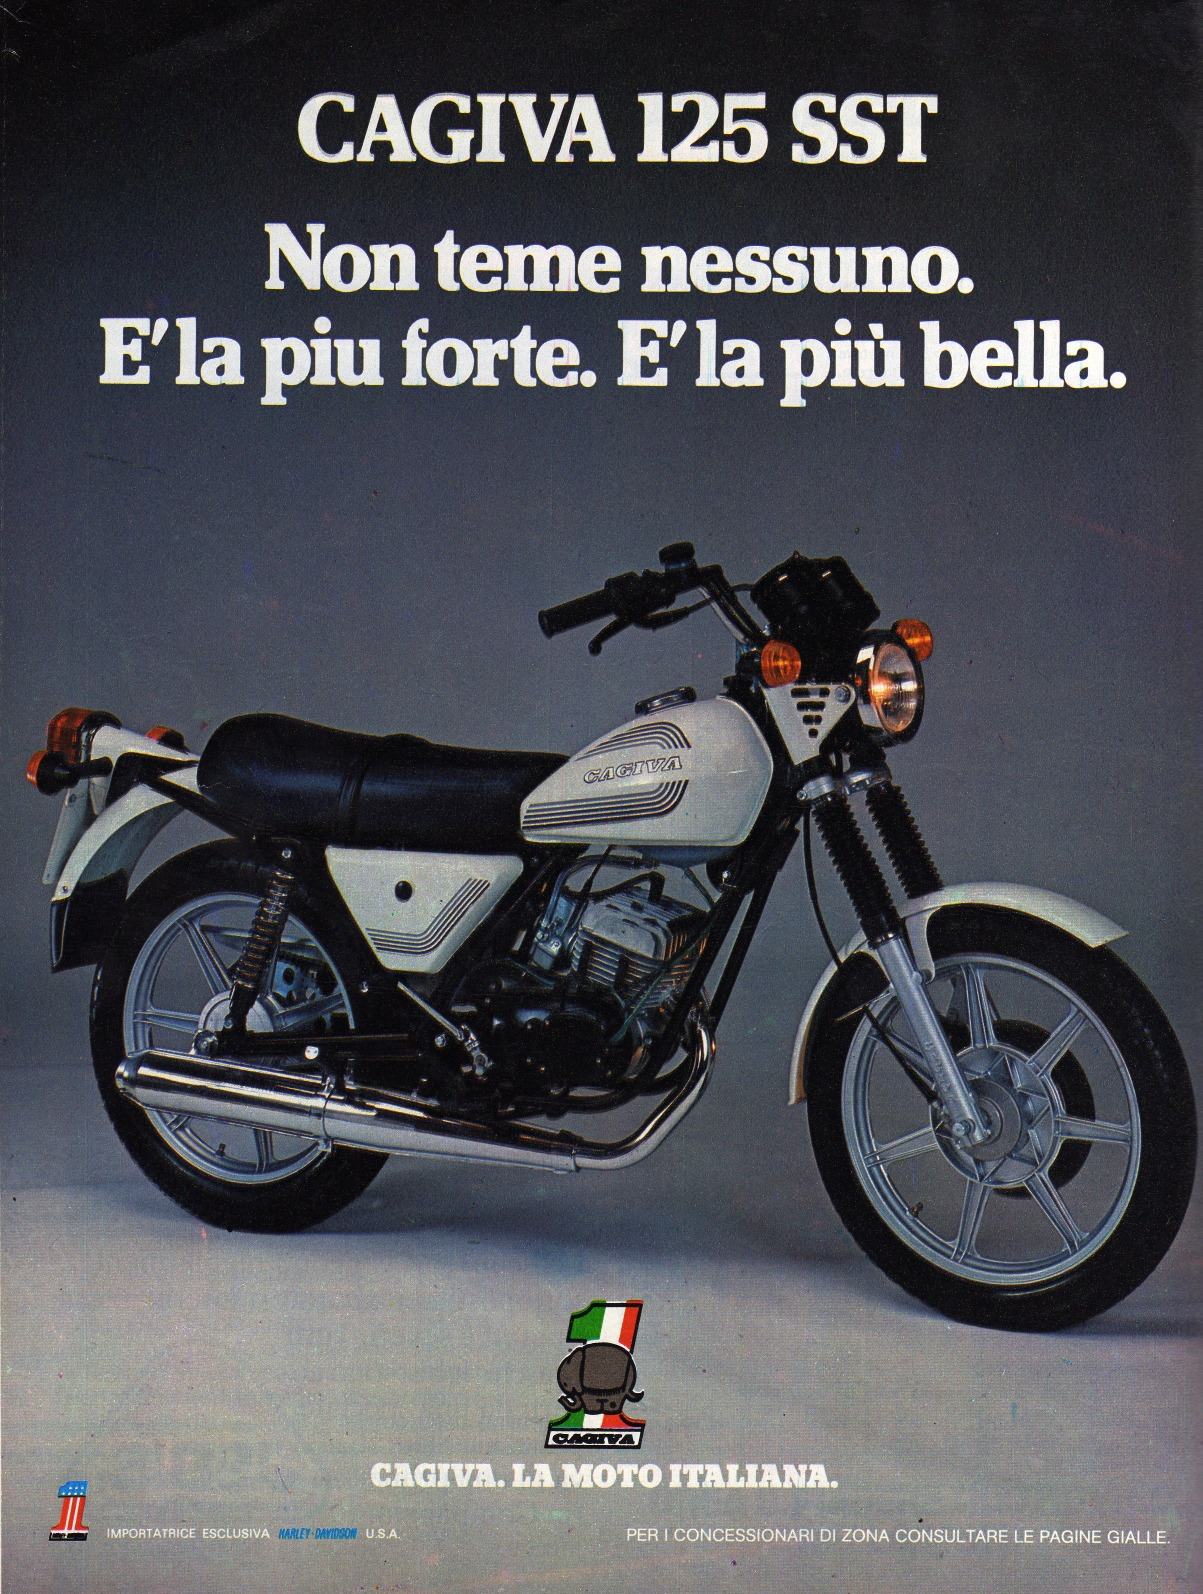 Cagiva SST 125 1981 images #68606